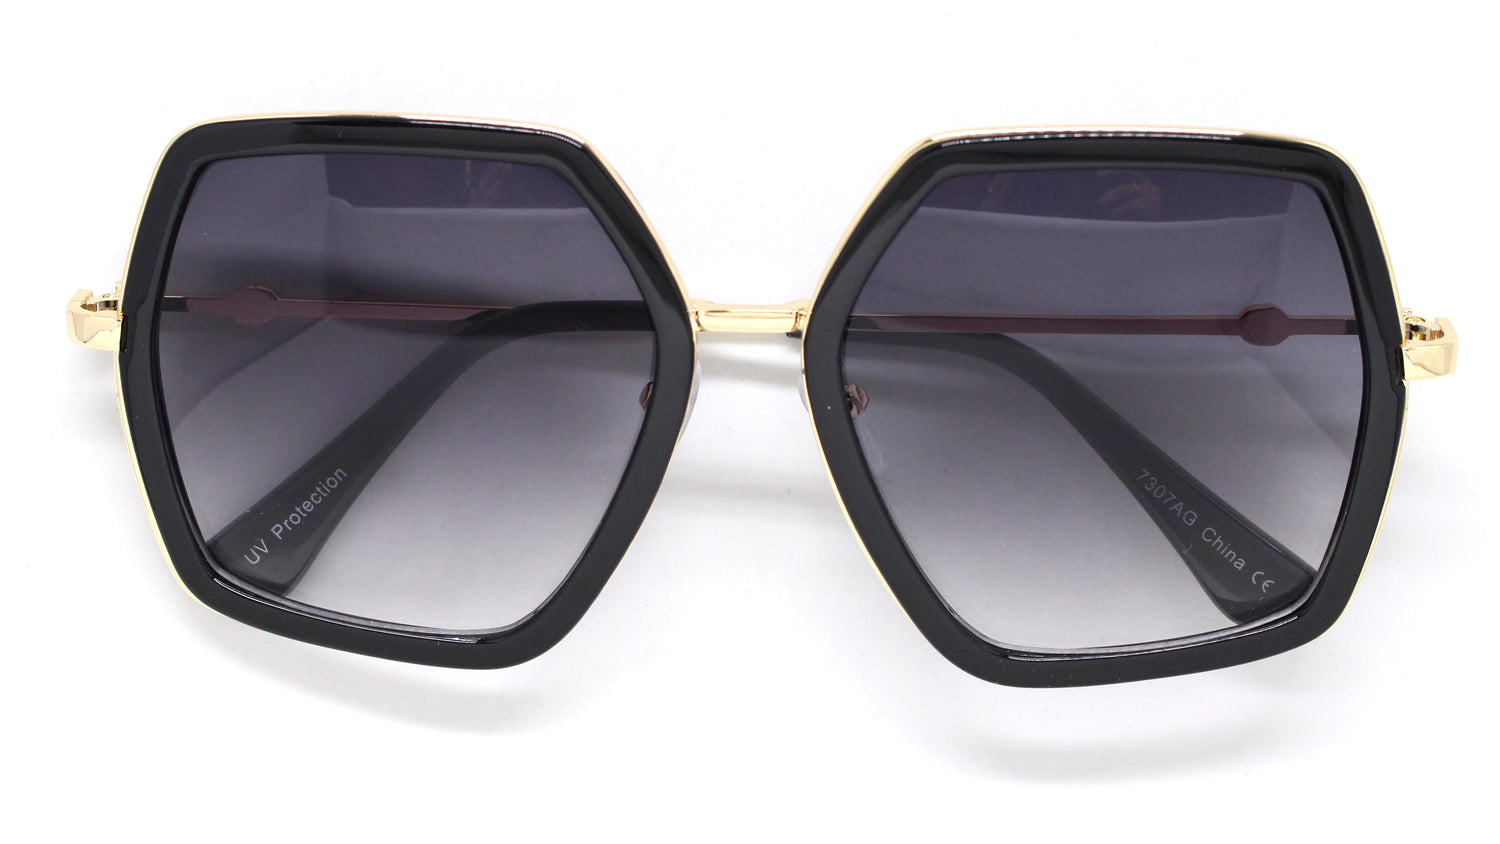 Genevieve Over-sized Sunglasses- Black Frame